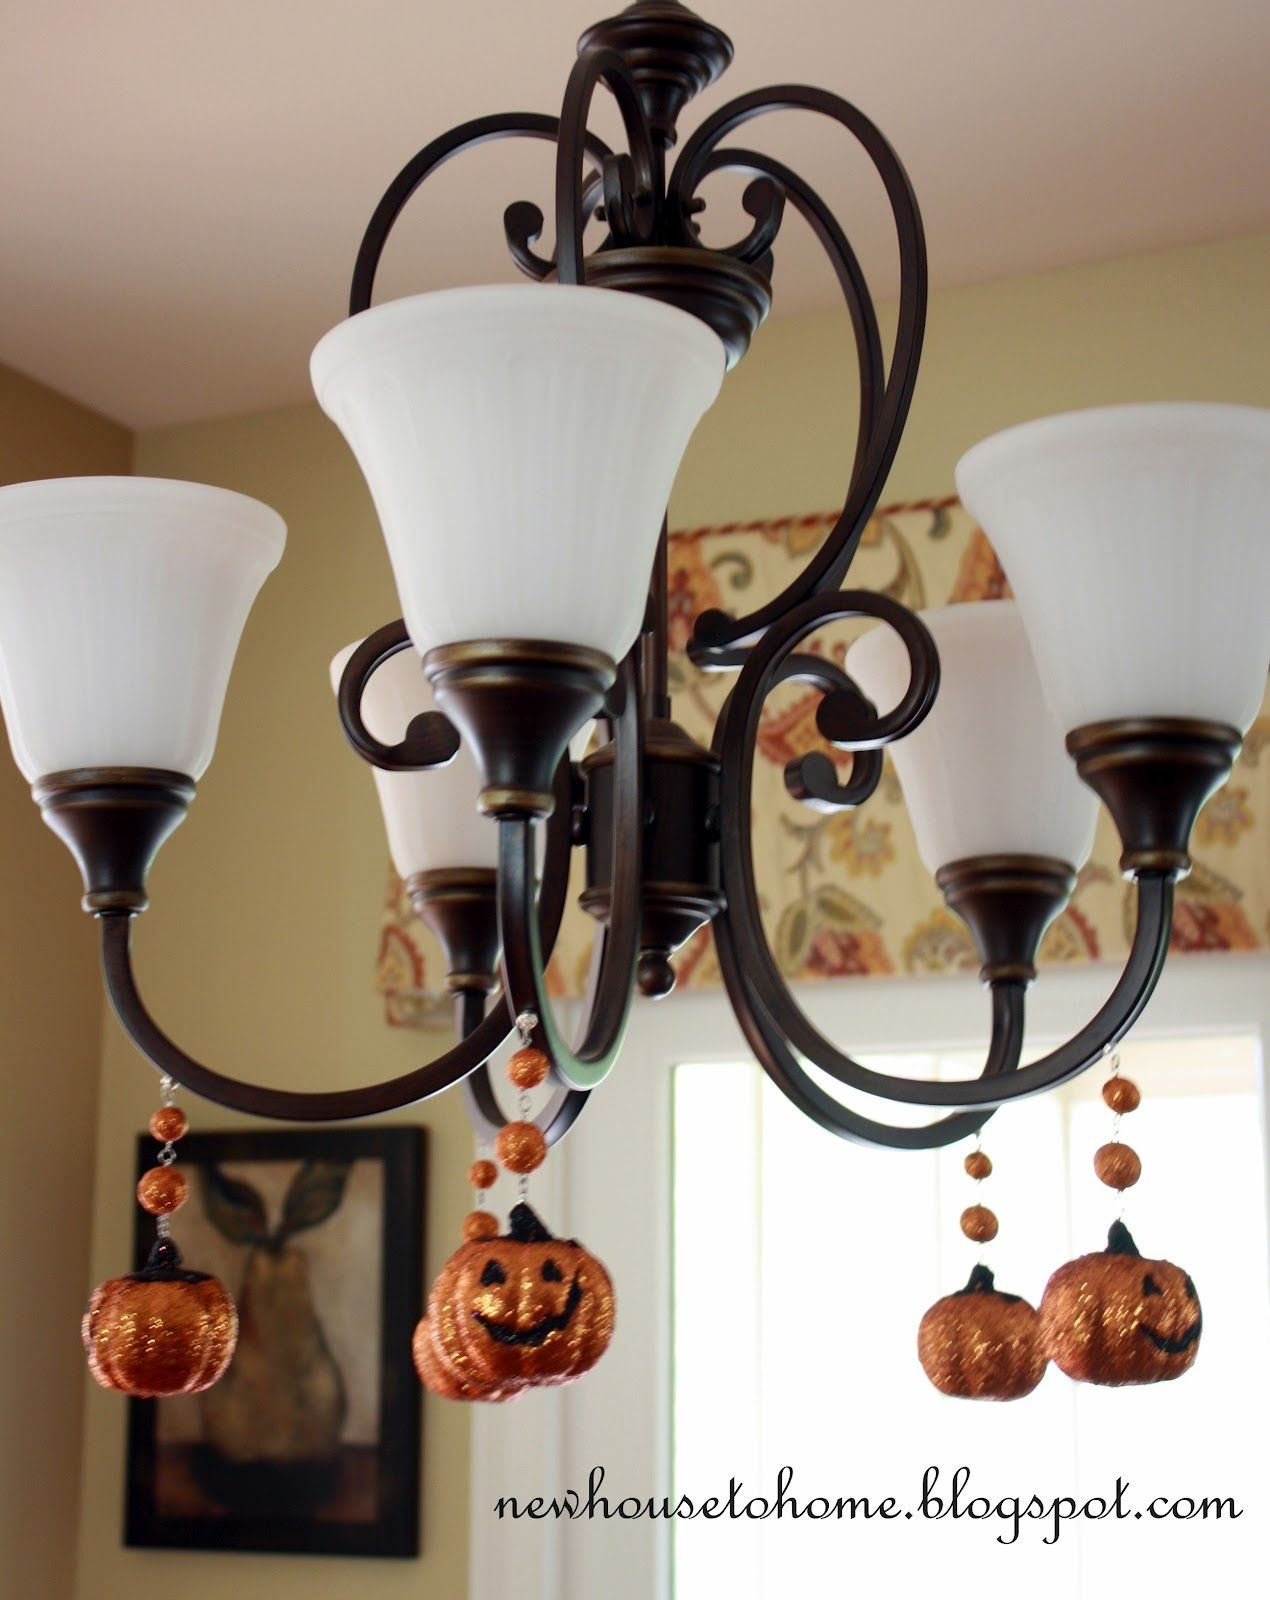 From New House To Home Great Chandelier Idea For Halloween Knock Off Decor Fall Halloween Decor Fall Decor